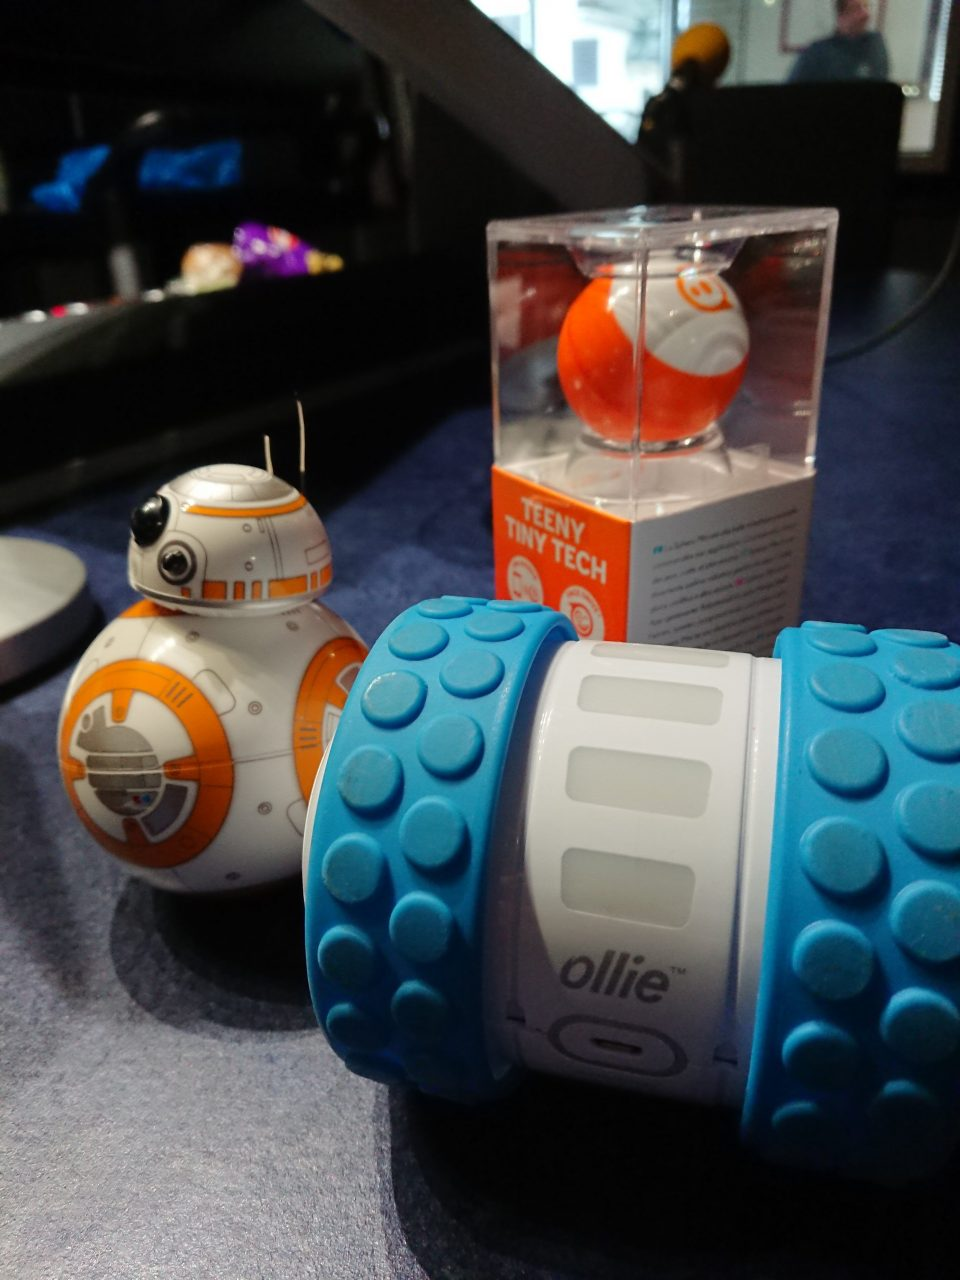 Sphero BB-8, Sphero Mini and Sphero Ollie